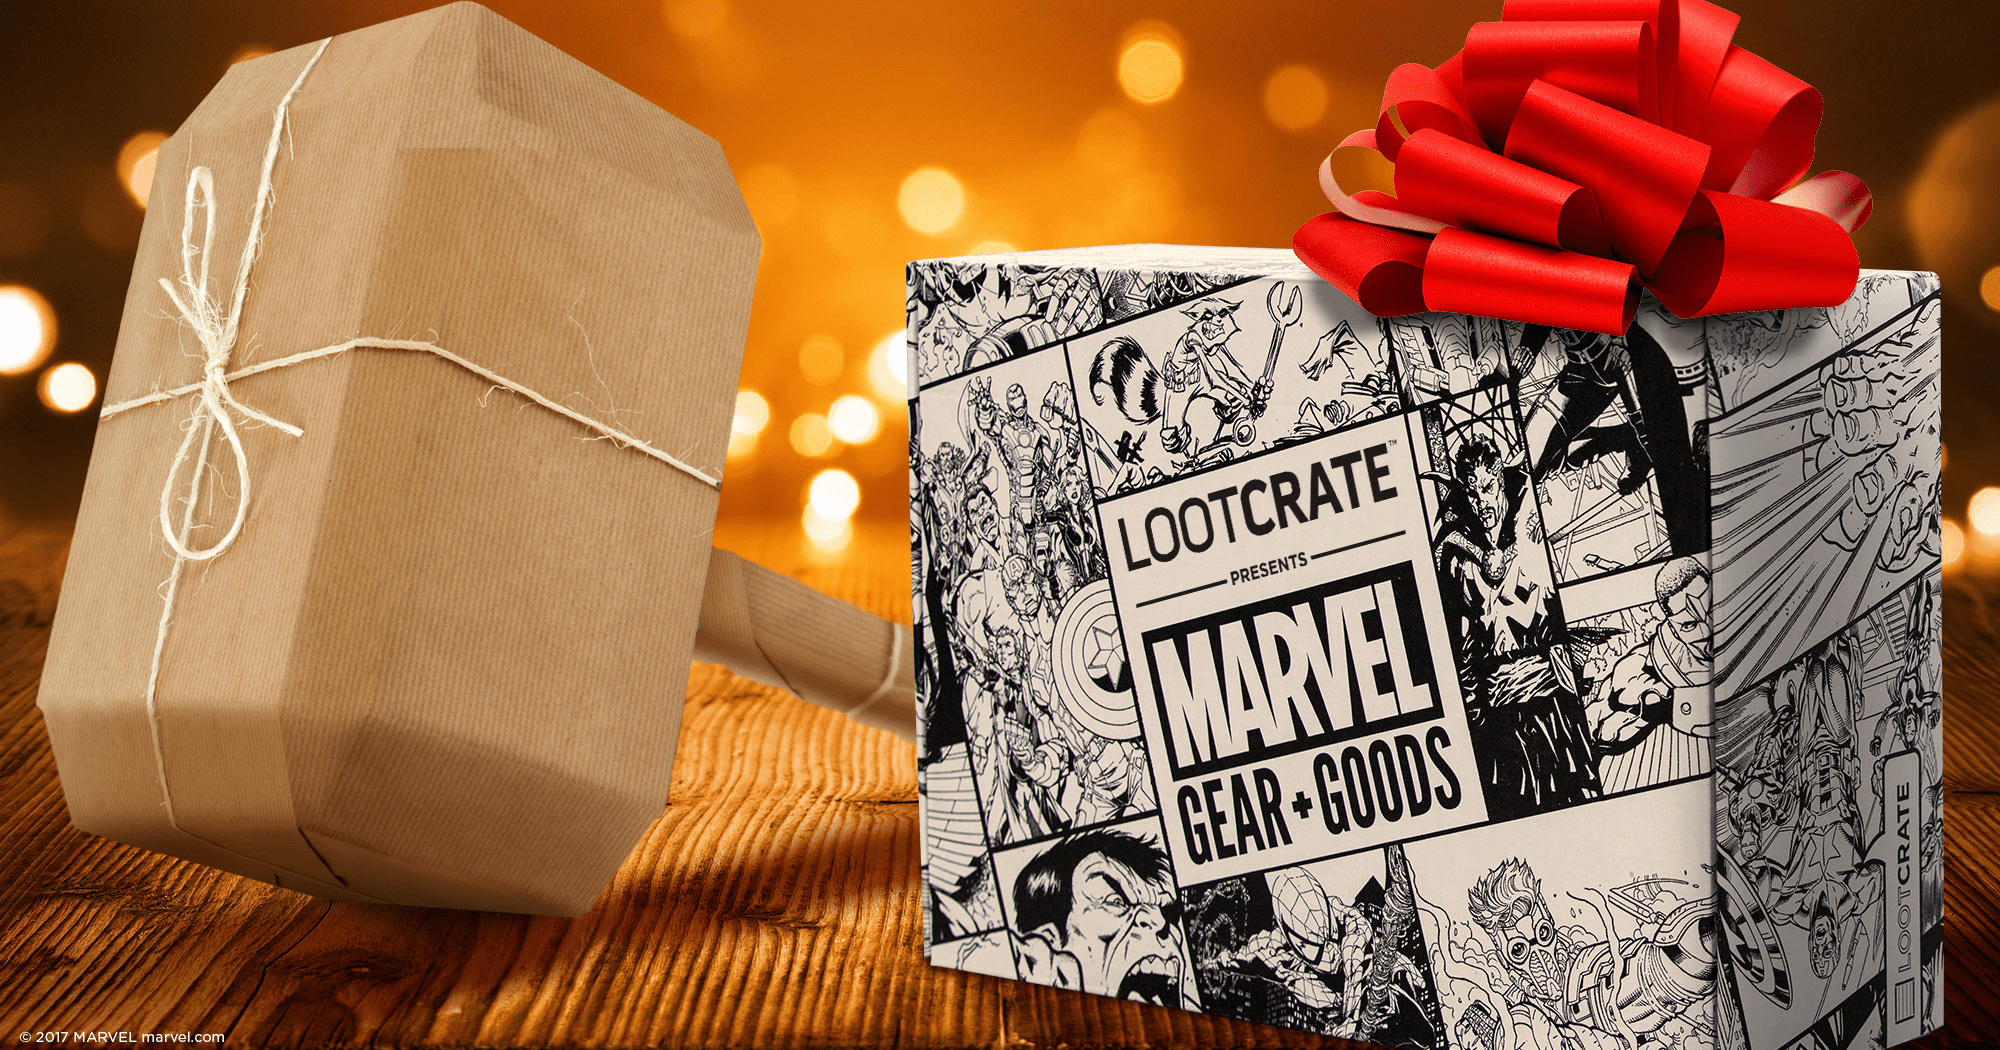 Loot Crate Marvel Gear + Goods November 2017 Spoilers + Coupon!